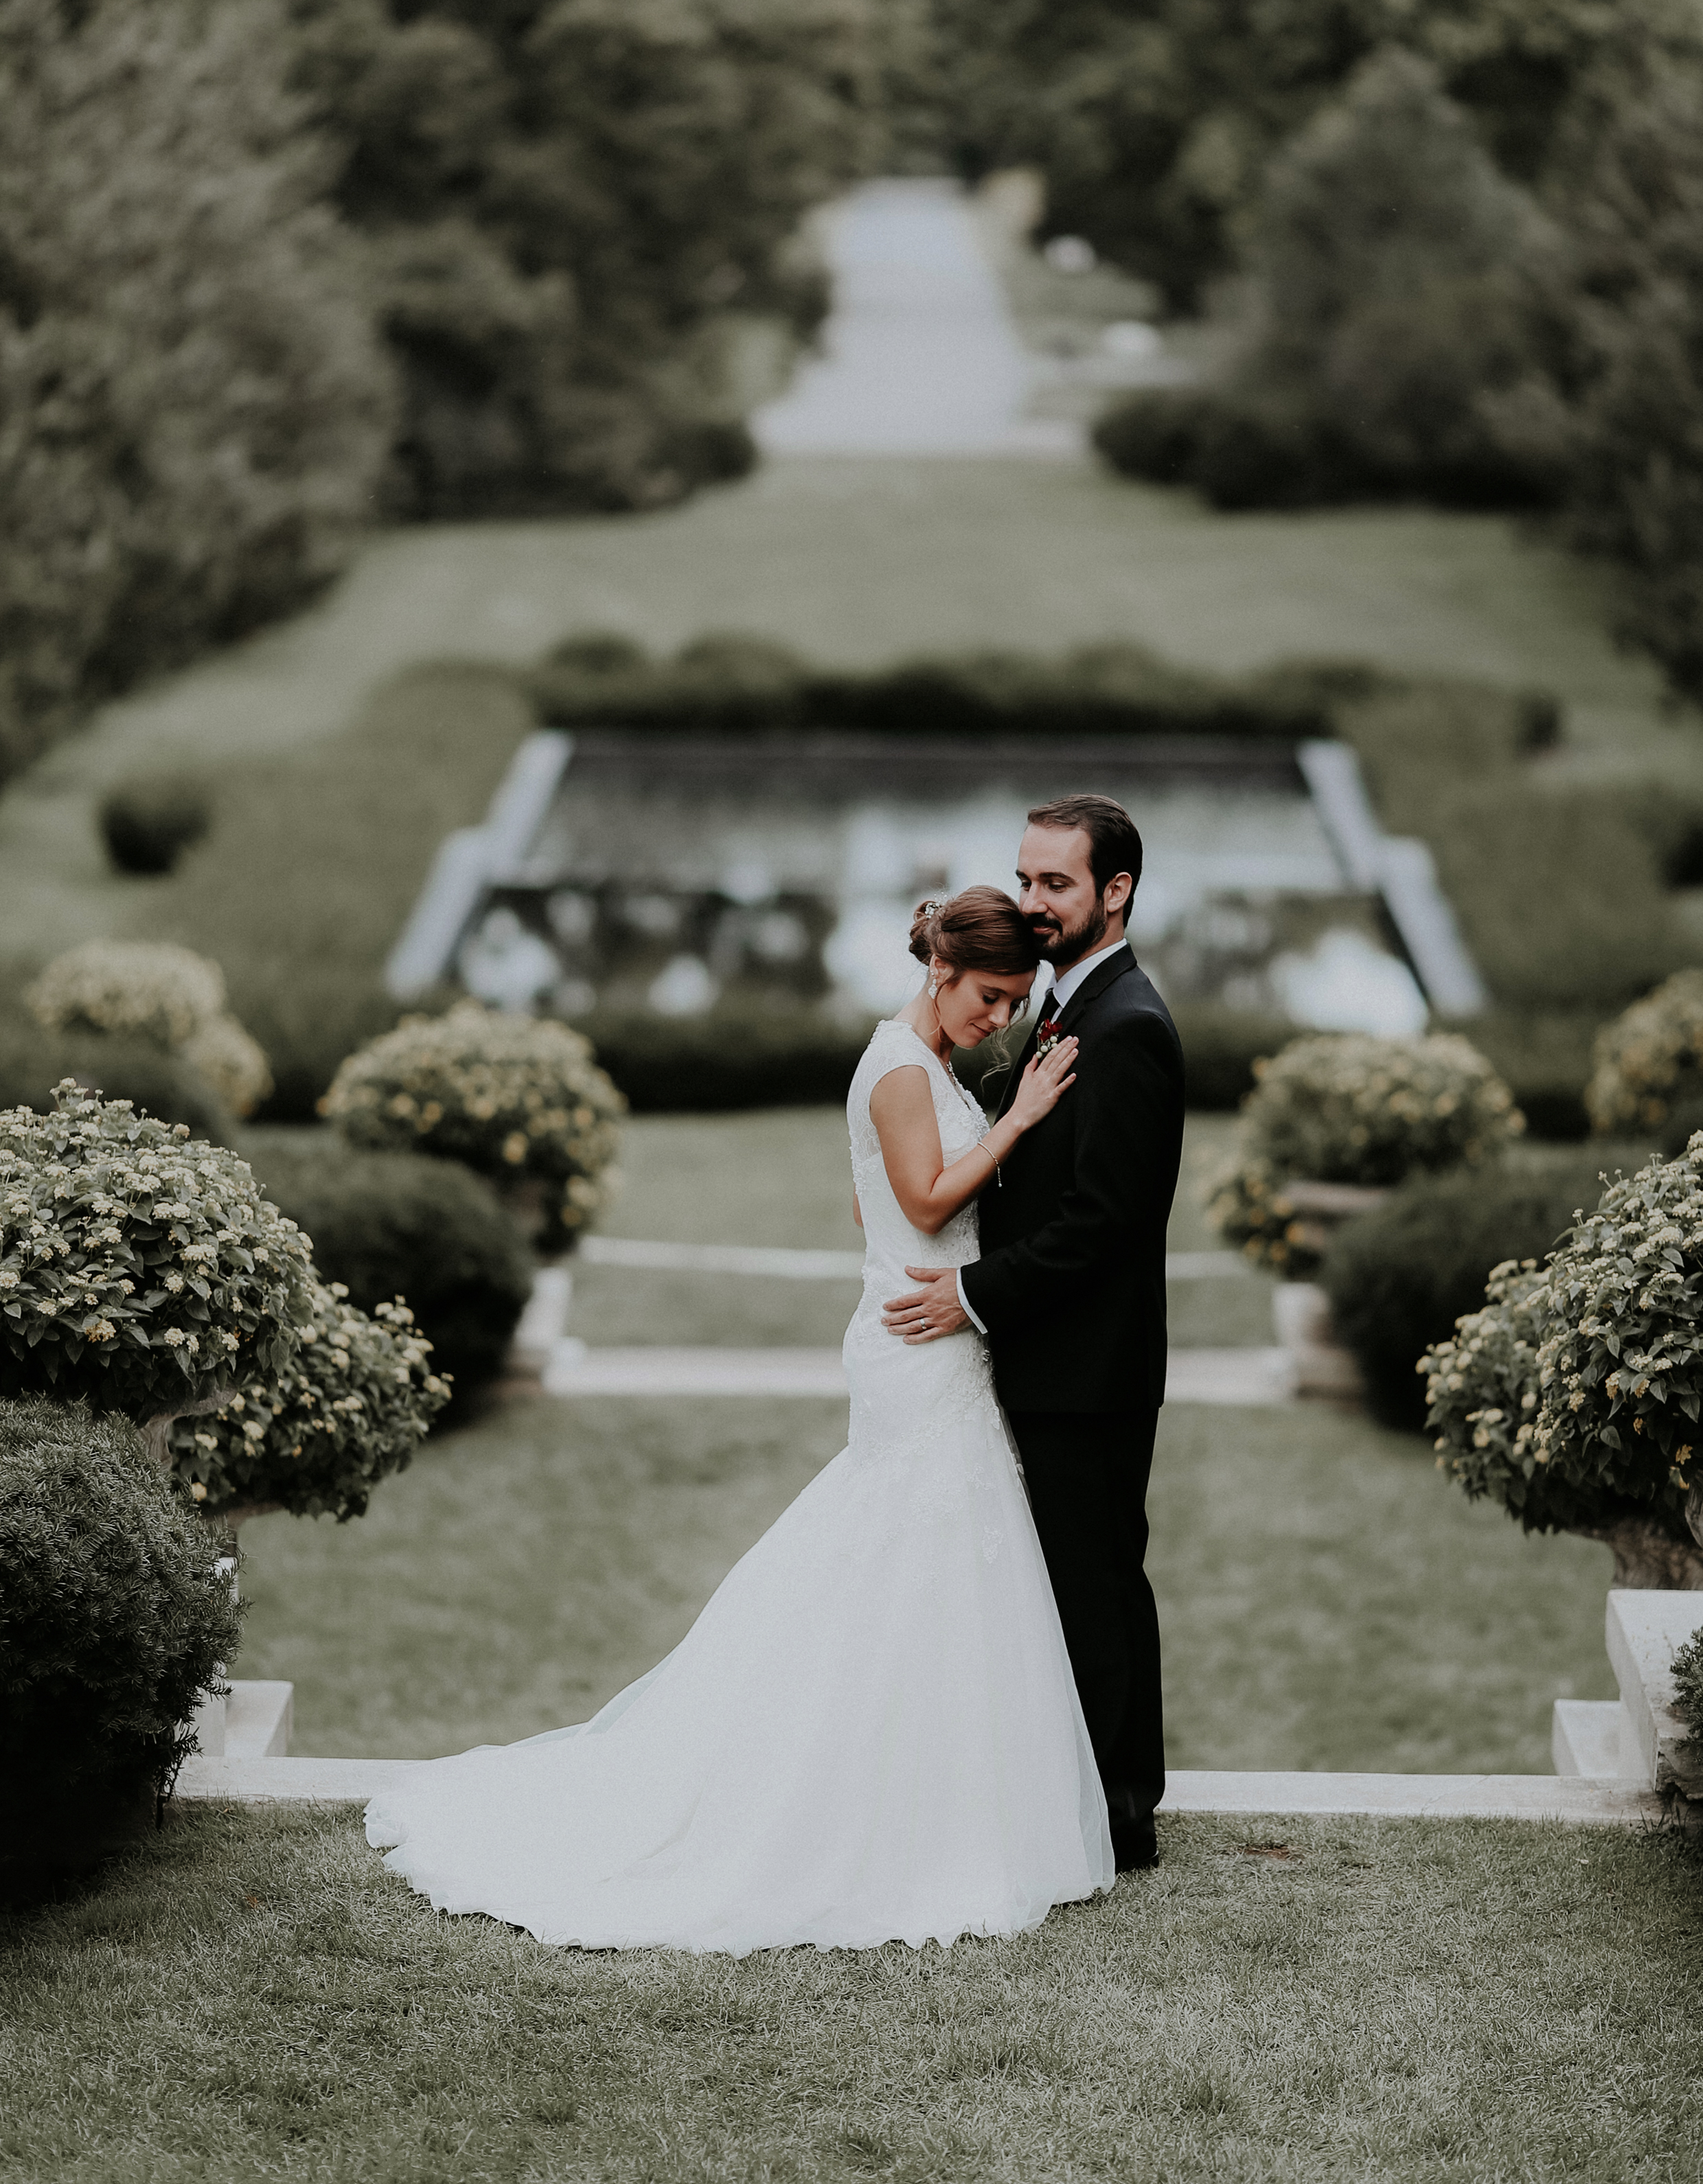 Wedding-Photography-Guidebook-Second-Edit_0005_Pg 6 - Full Page Image.jpg